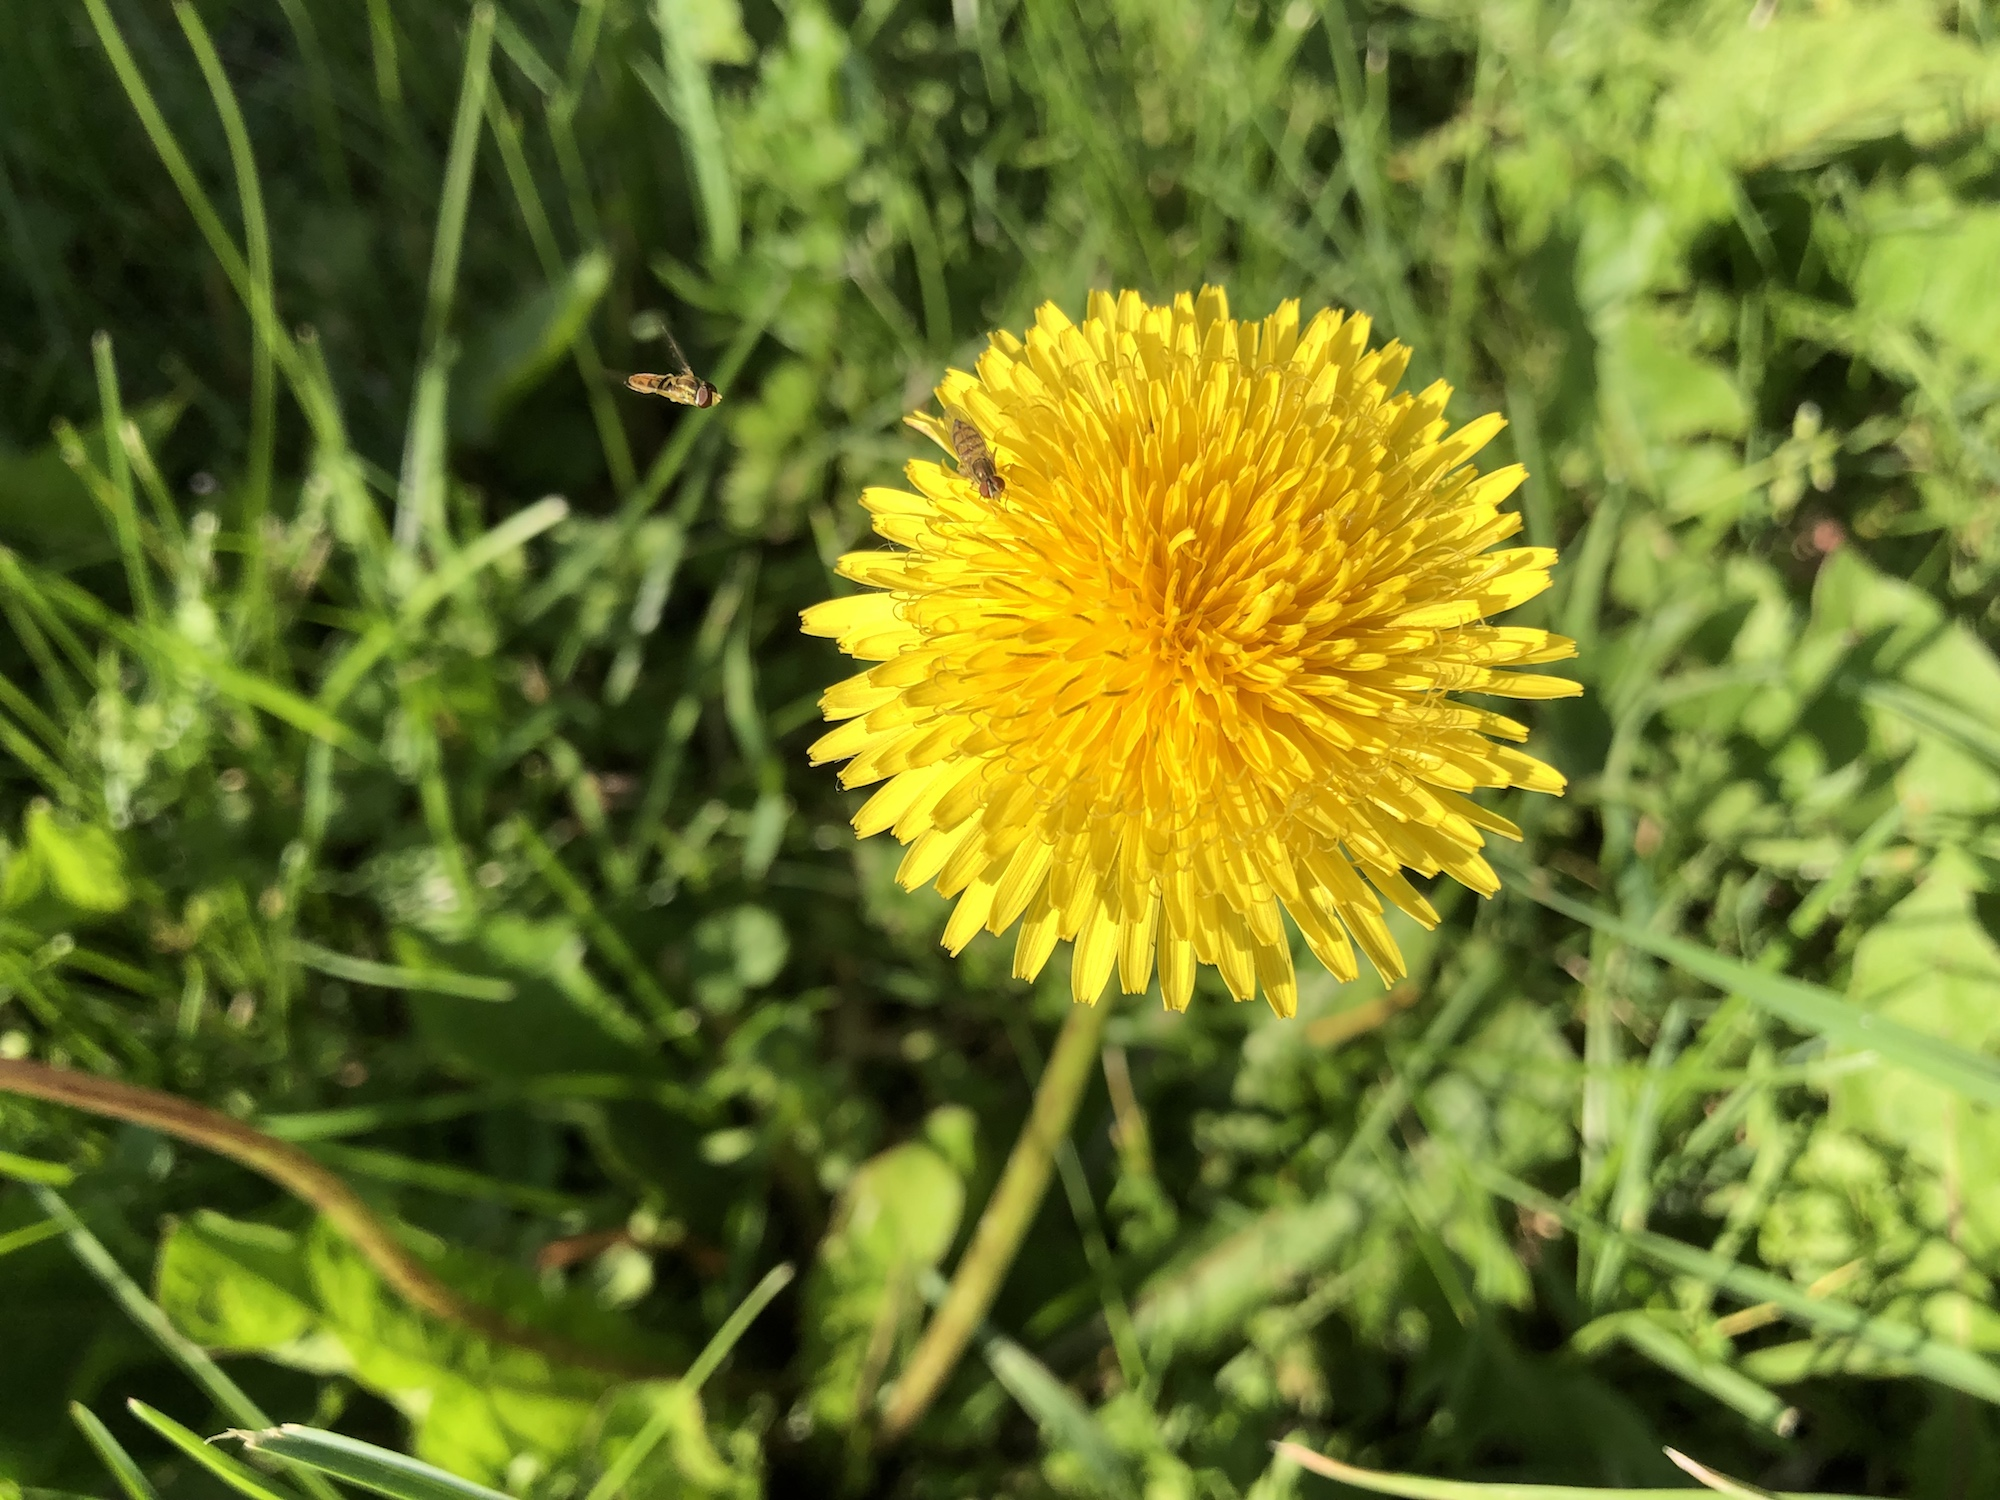 Dandelion by Stevens Pond in Madison, Wisconsin on June 11, 2019.